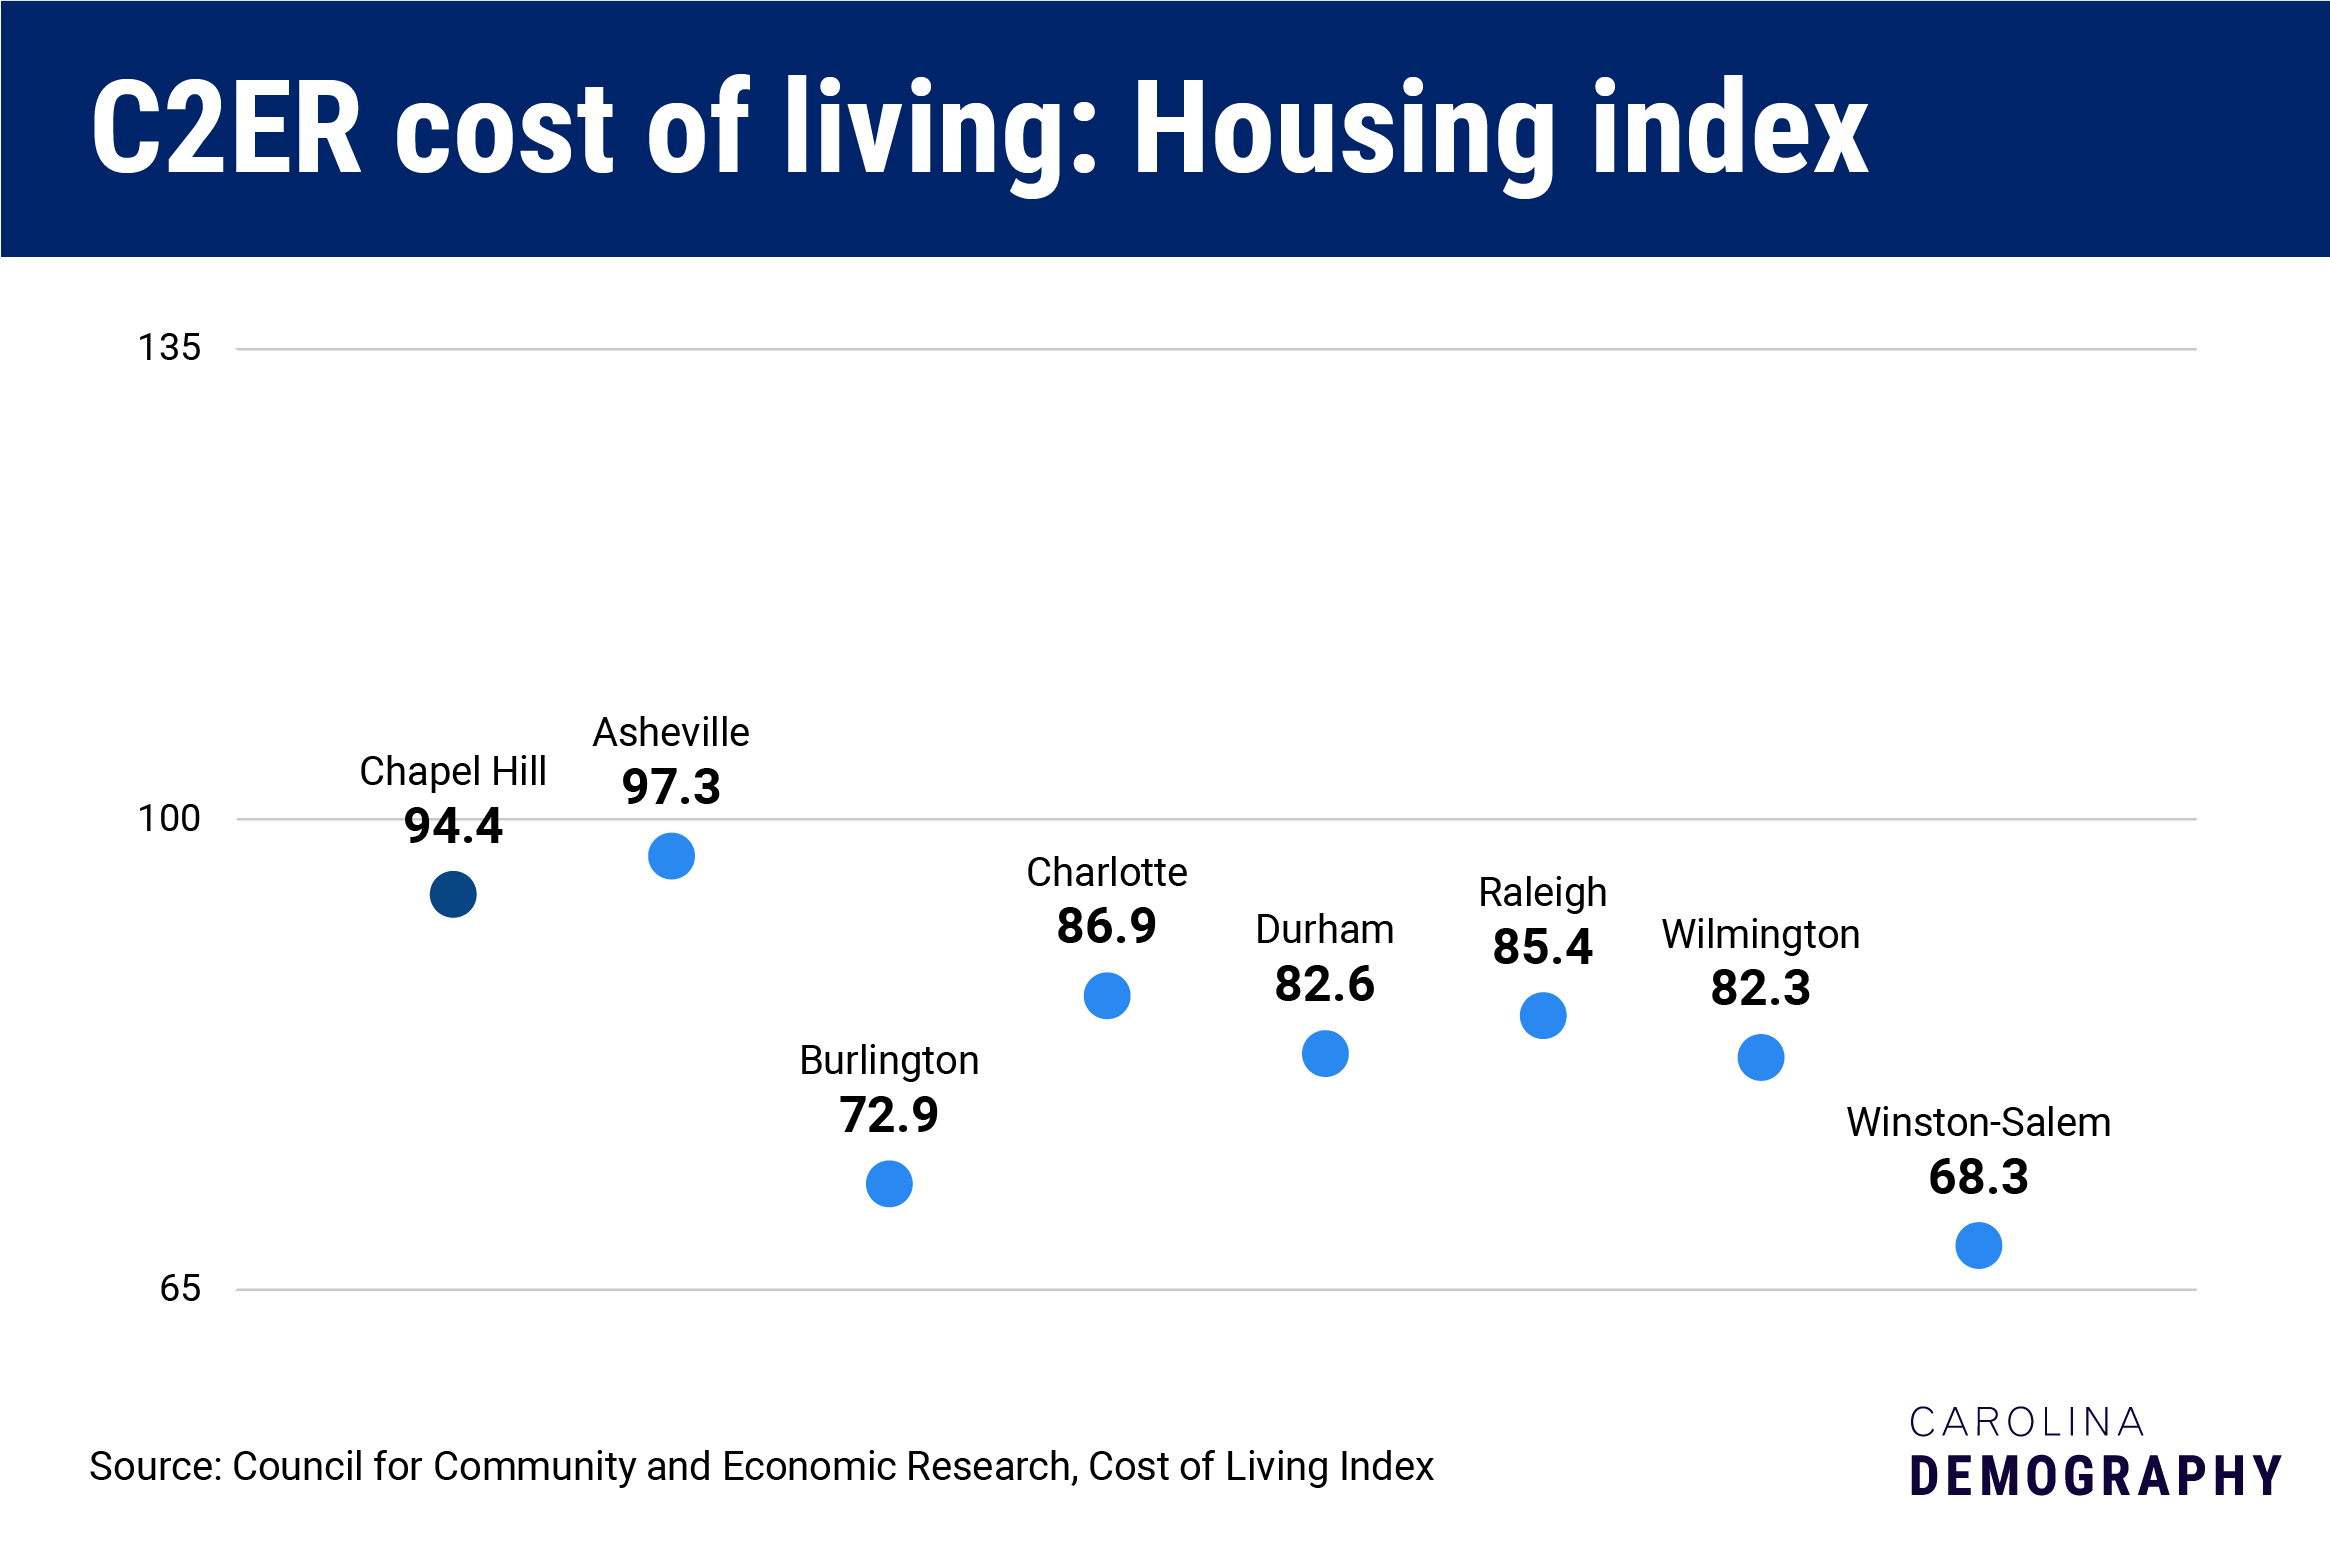 C2ER cost of living: housing index